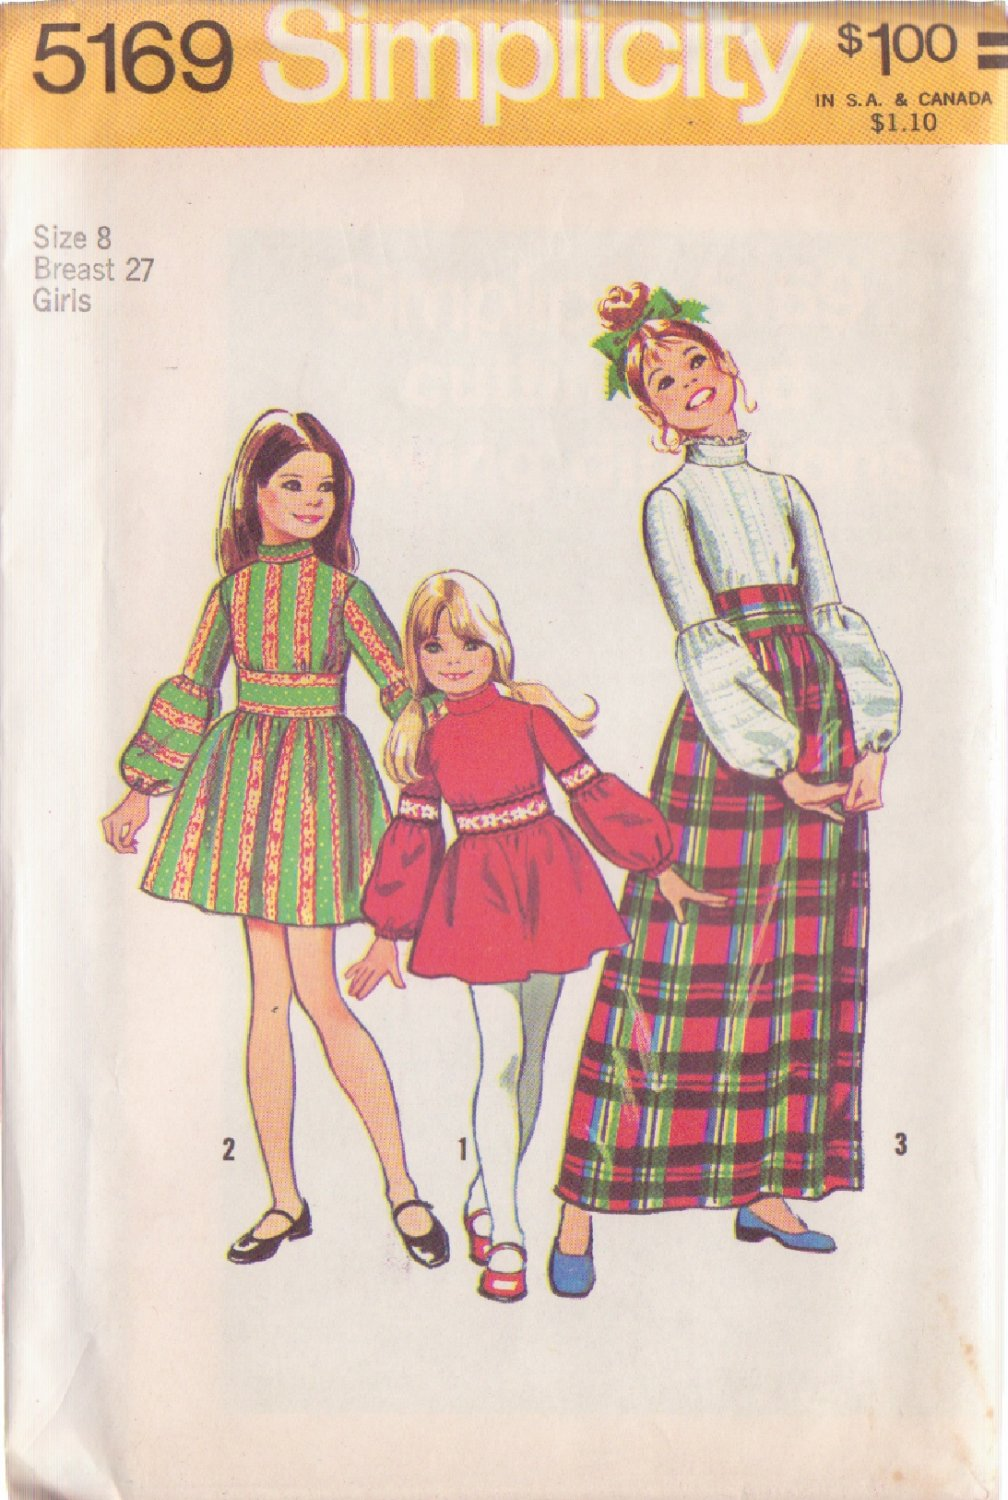 SIMPLICITY 1972 VINTAGE 5169 SIZE 8 GIRL'S DRESS IN 2 LENGTHS